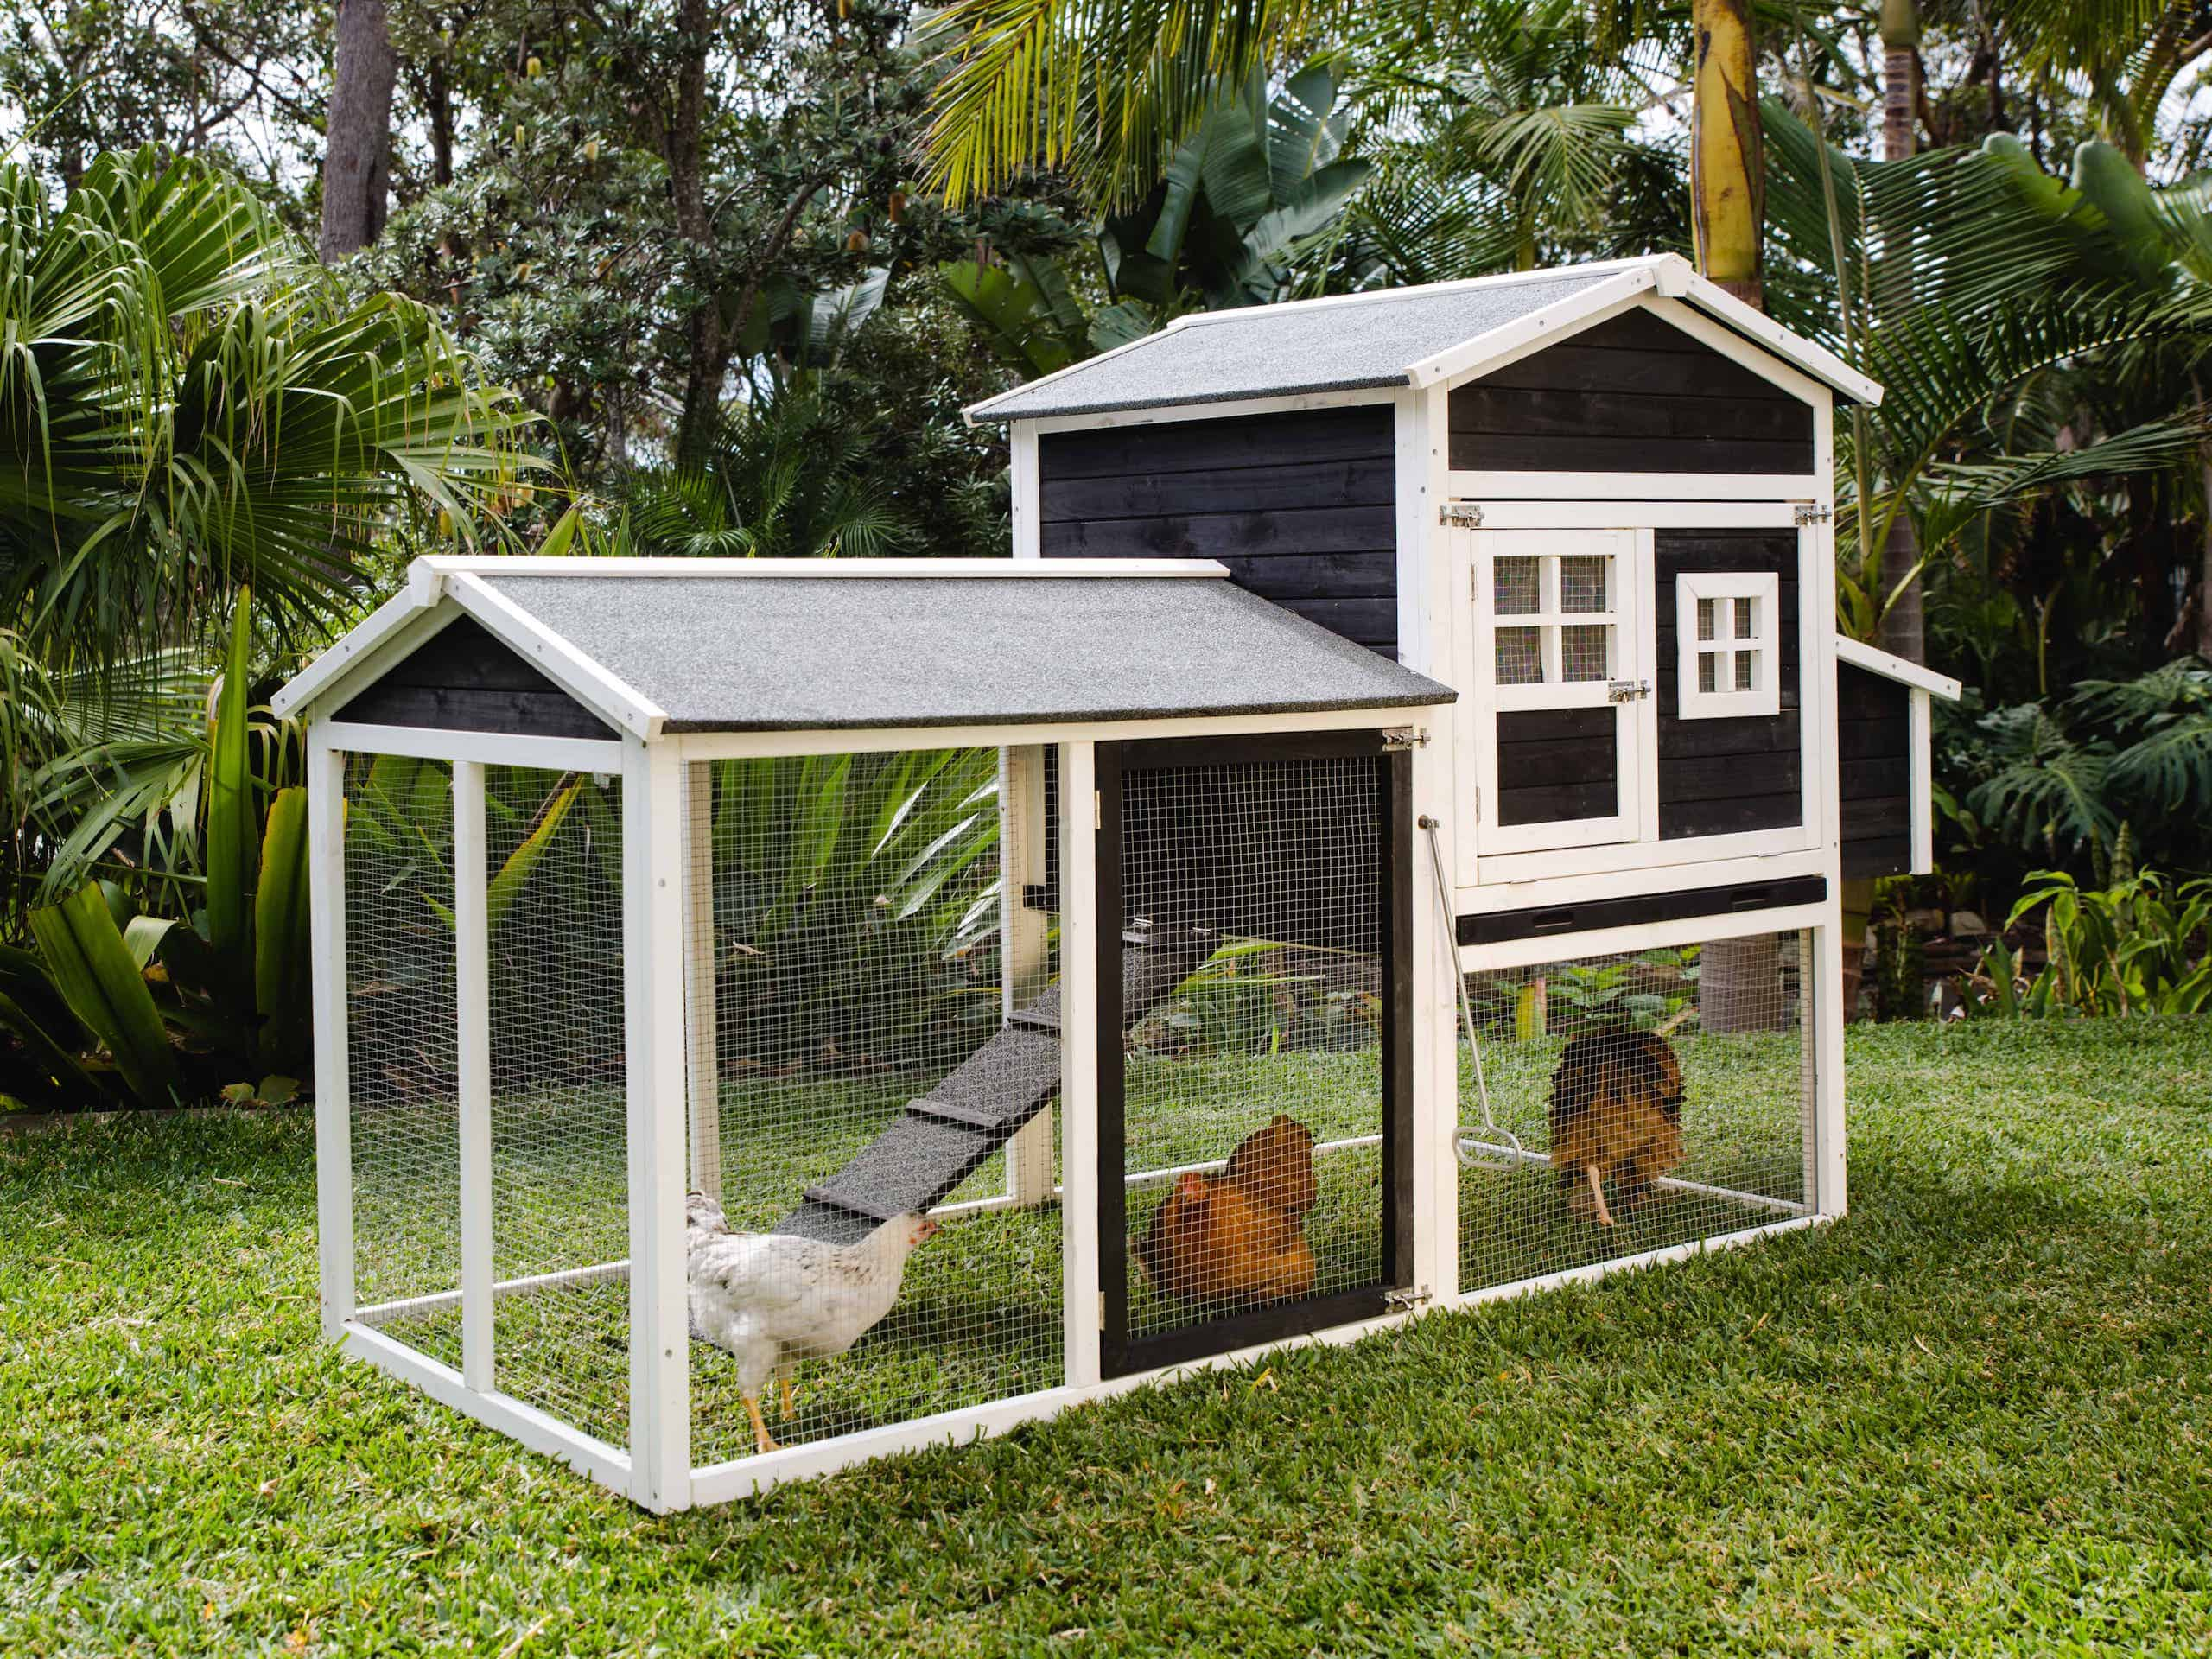 Mansion Chicken Coop by Somerzby